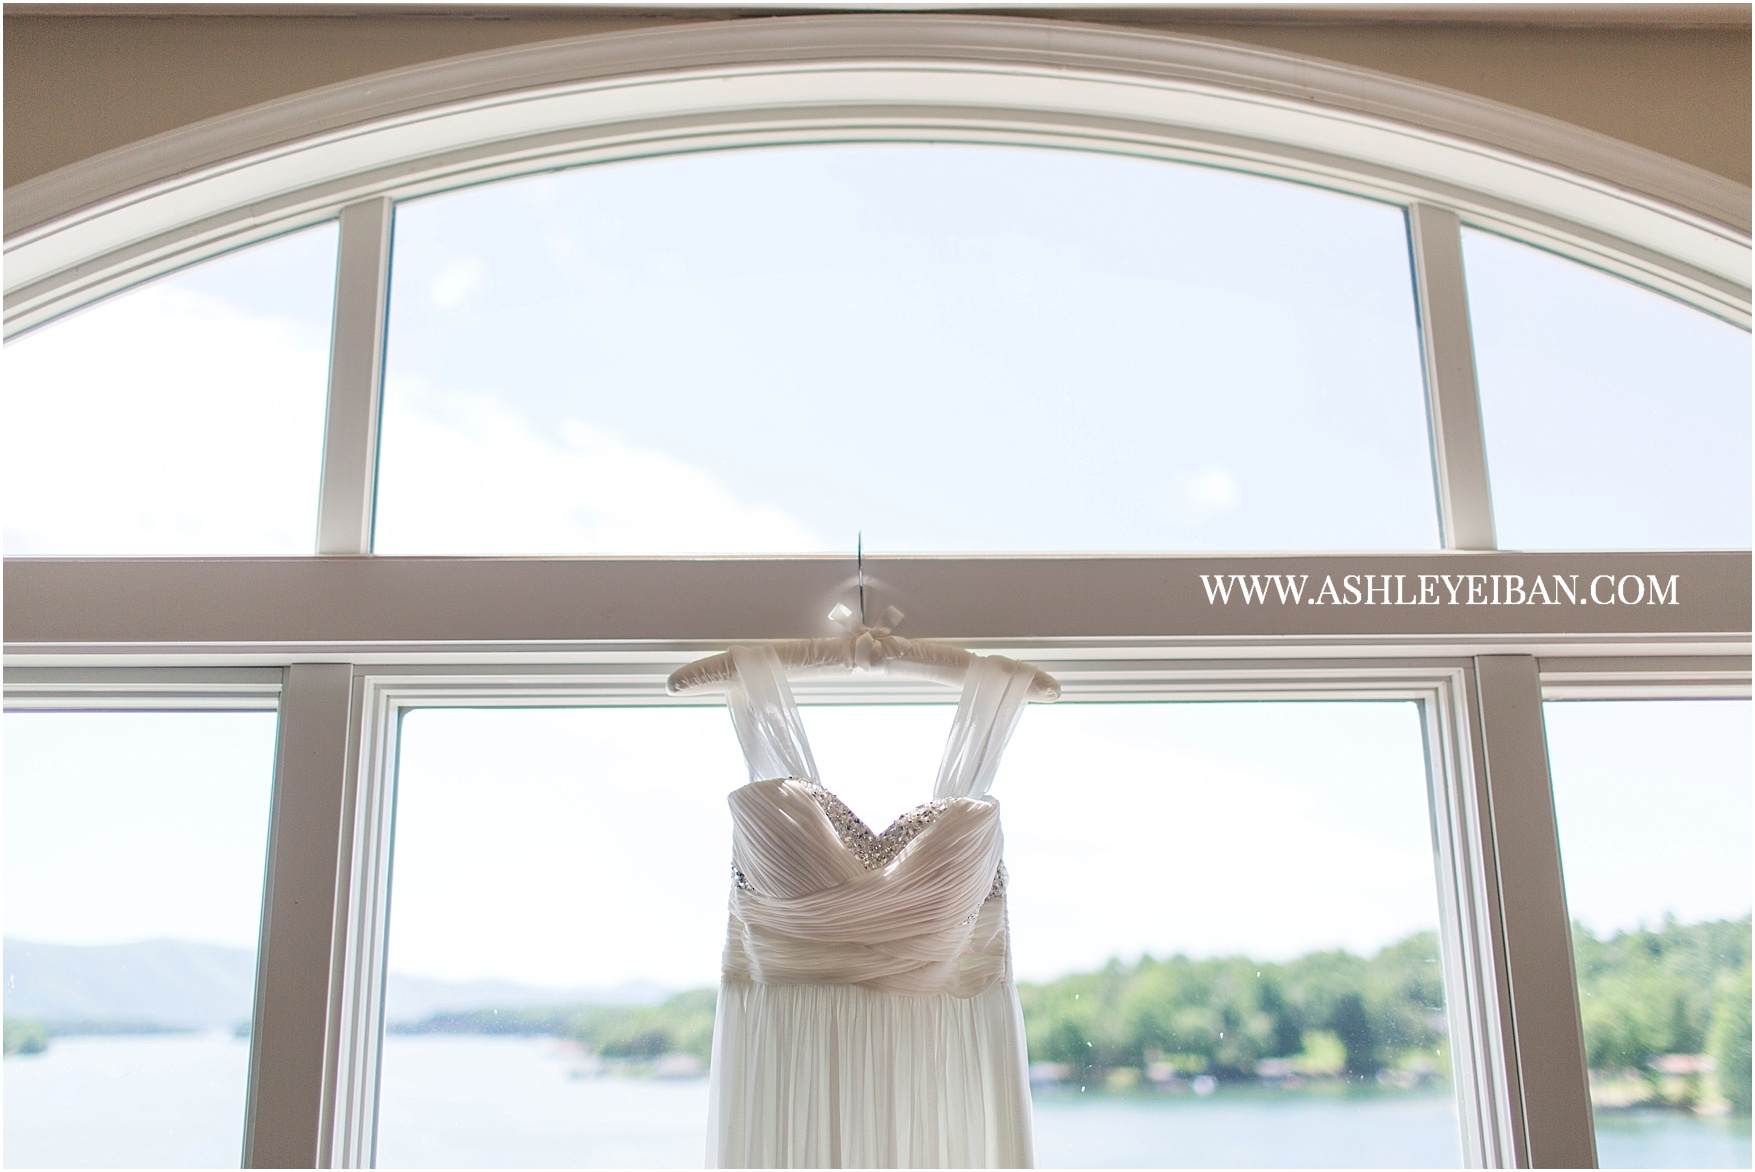 Smith Mountain Lake Wedding || Elopement Photographer || Lynchburg Wedding Photographer || Ashley Eiban Photography || www.ashleyeiban.com